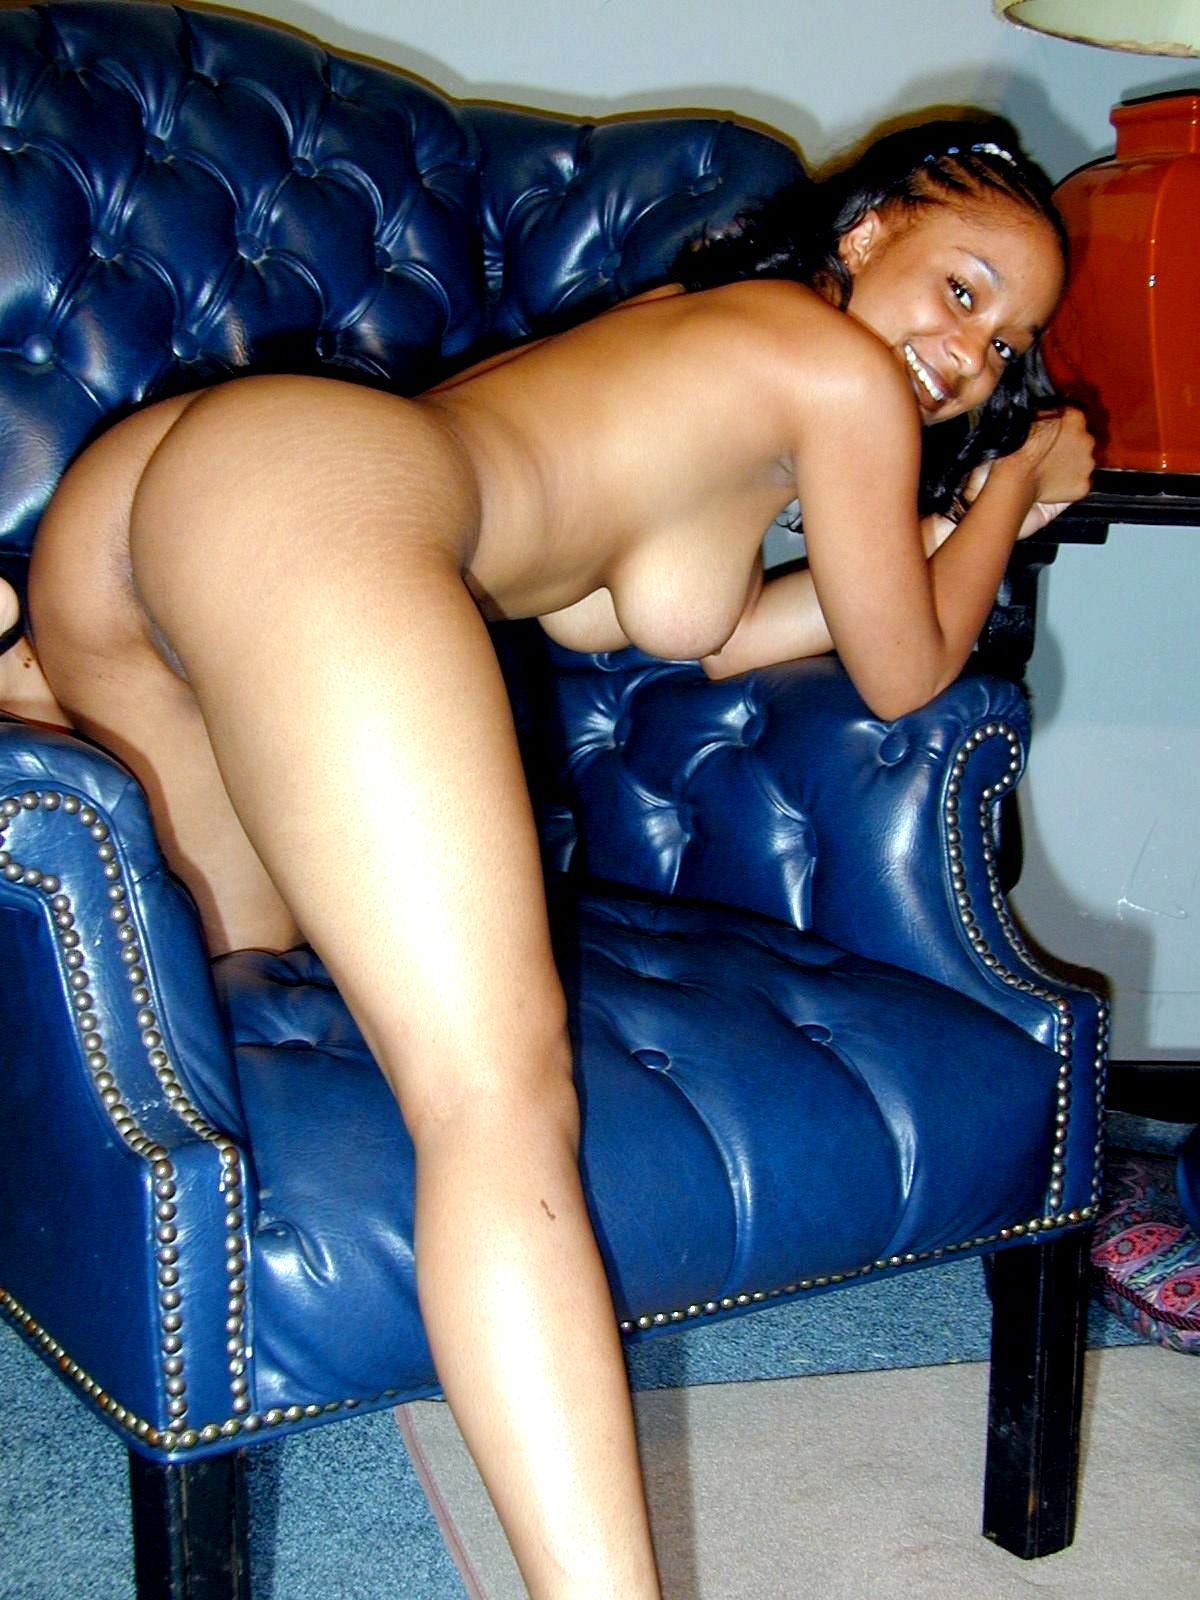 BLACK PORN TUBE HAS LARGE PORN COLLECTION OF HORNY AND NASTY BLACK 660 ...